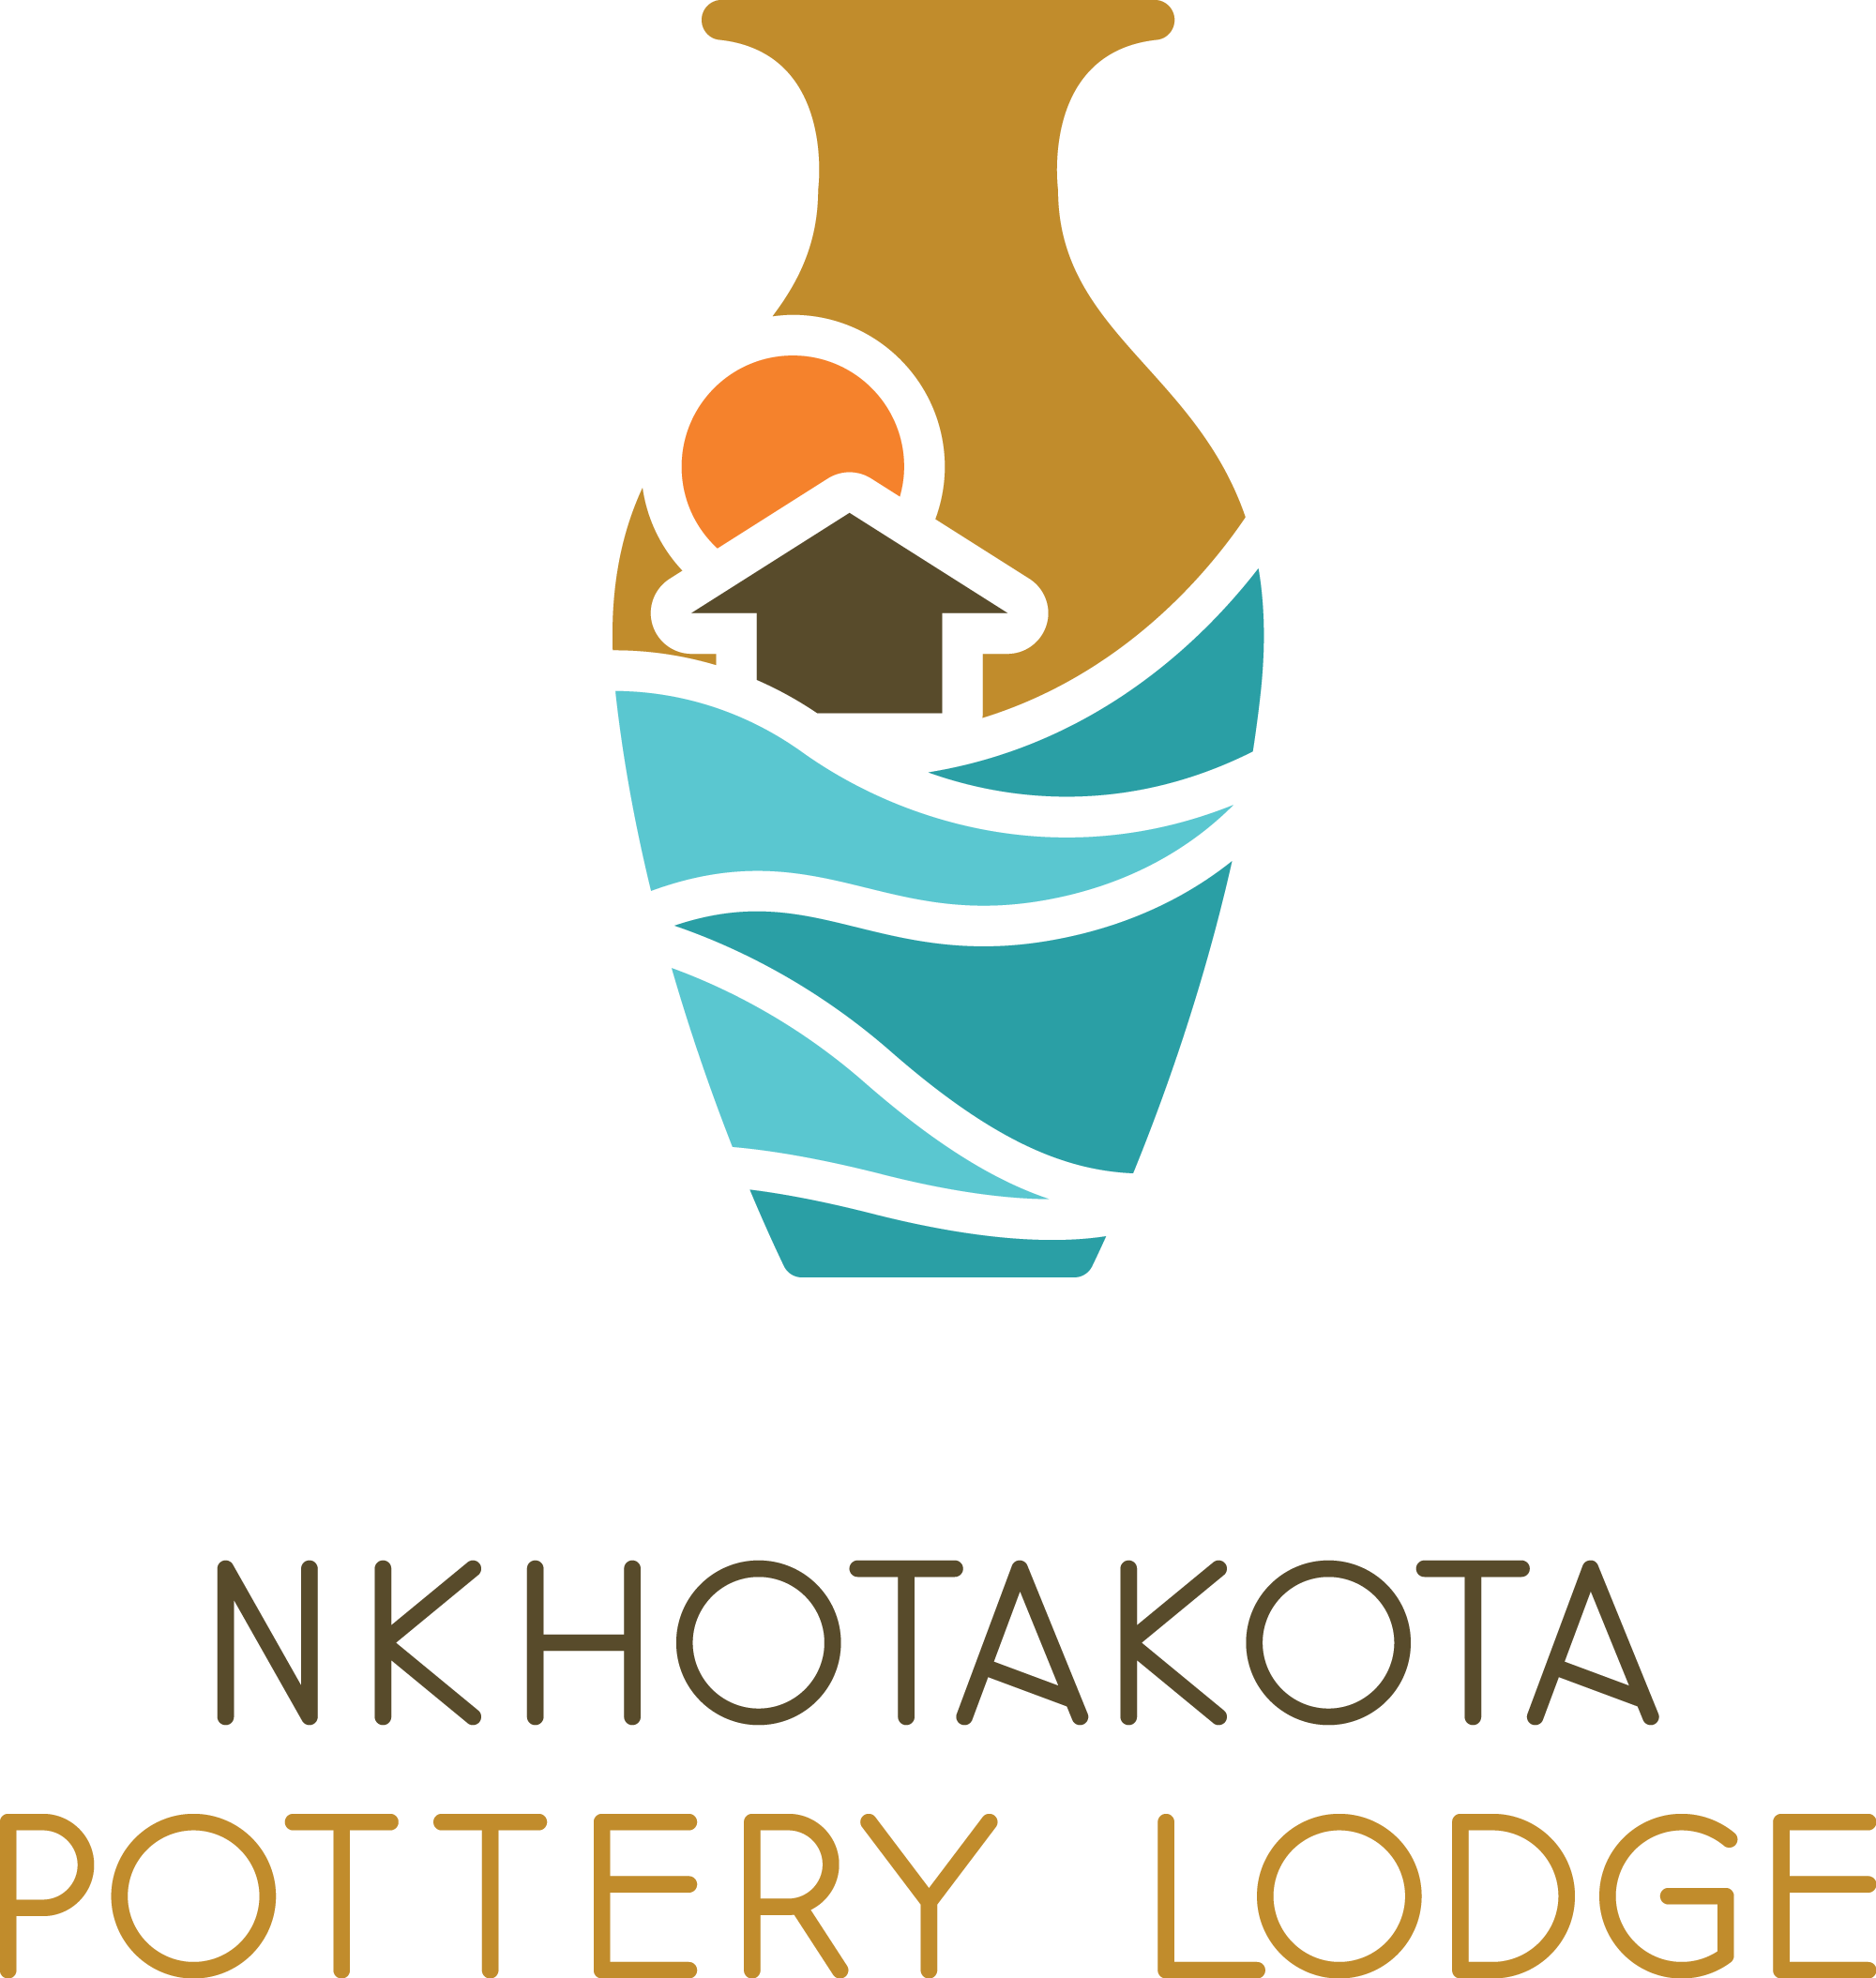 Nkhotakota Pottery Lodge